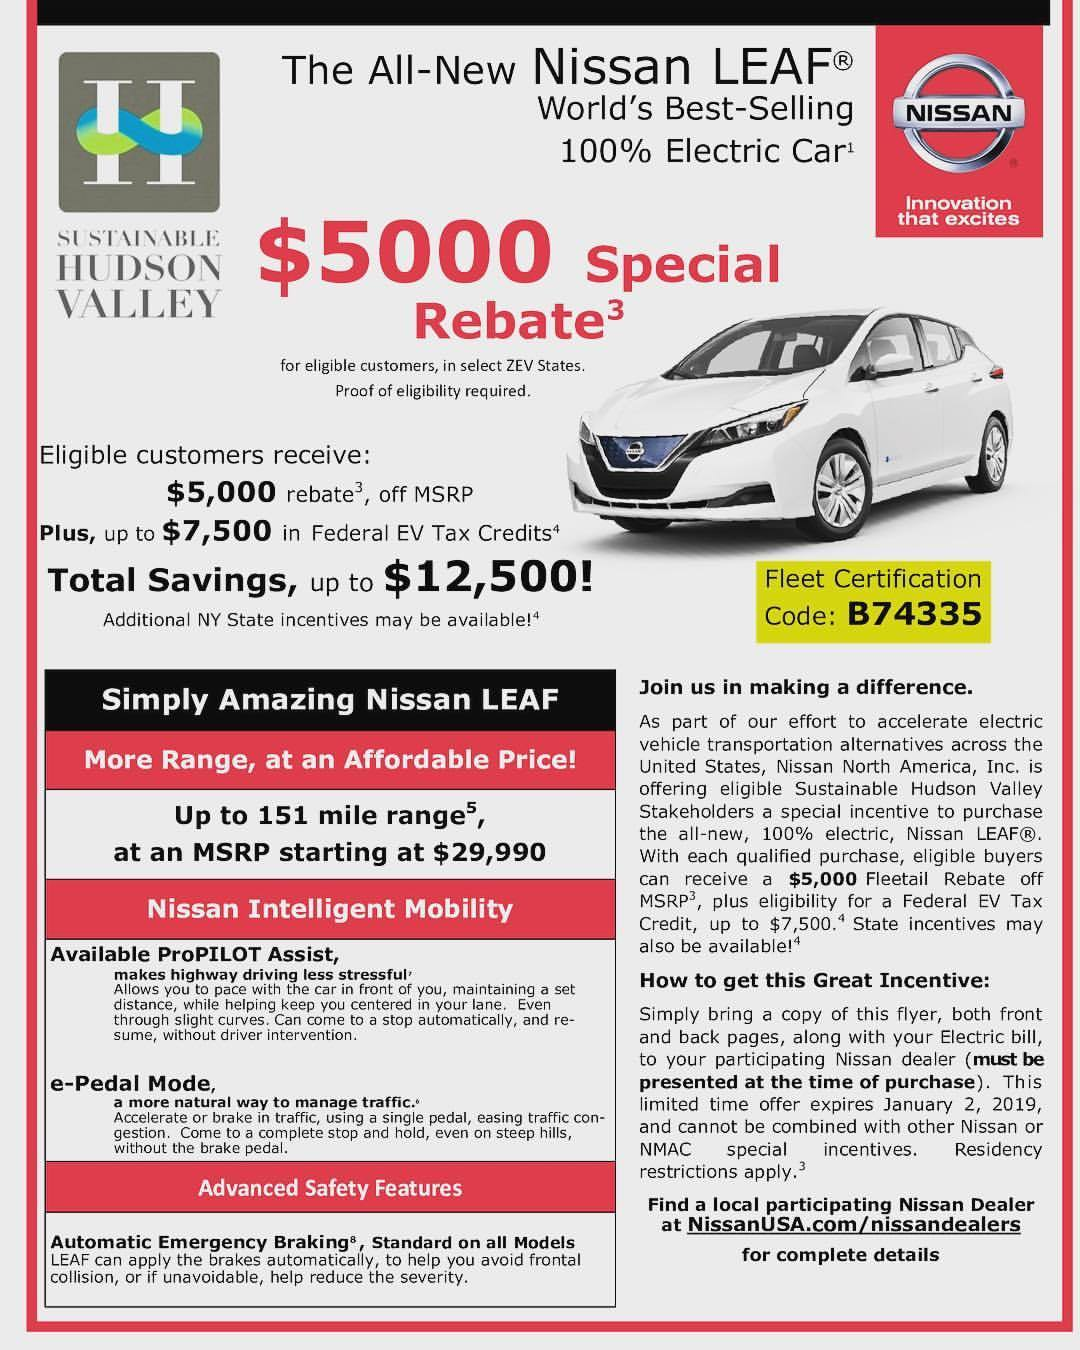 Who is really ready for Discounts?! In Addition to great savings from @kingstonnissanny We have to say Thank you. Let's hear it for @nissanusa with a $5,000 discount. That's to start their 8 weeks of electric vehicle savings with Drive Electric Hudson Valley. Total savings with tax credit till end of year is $12,500 off the cost. Use this discount if you live in the Hudson Valley and want a Nissan Leaf! #driveelectric #hudsonvalley #ny #sethleitman #greenlivingguy #thegreenlivingguy   https://www.instagram.com/p/Bq0_BjHHZgj/?utm_source=ig_tumblr_share&igshid=6xbrht3gmldl